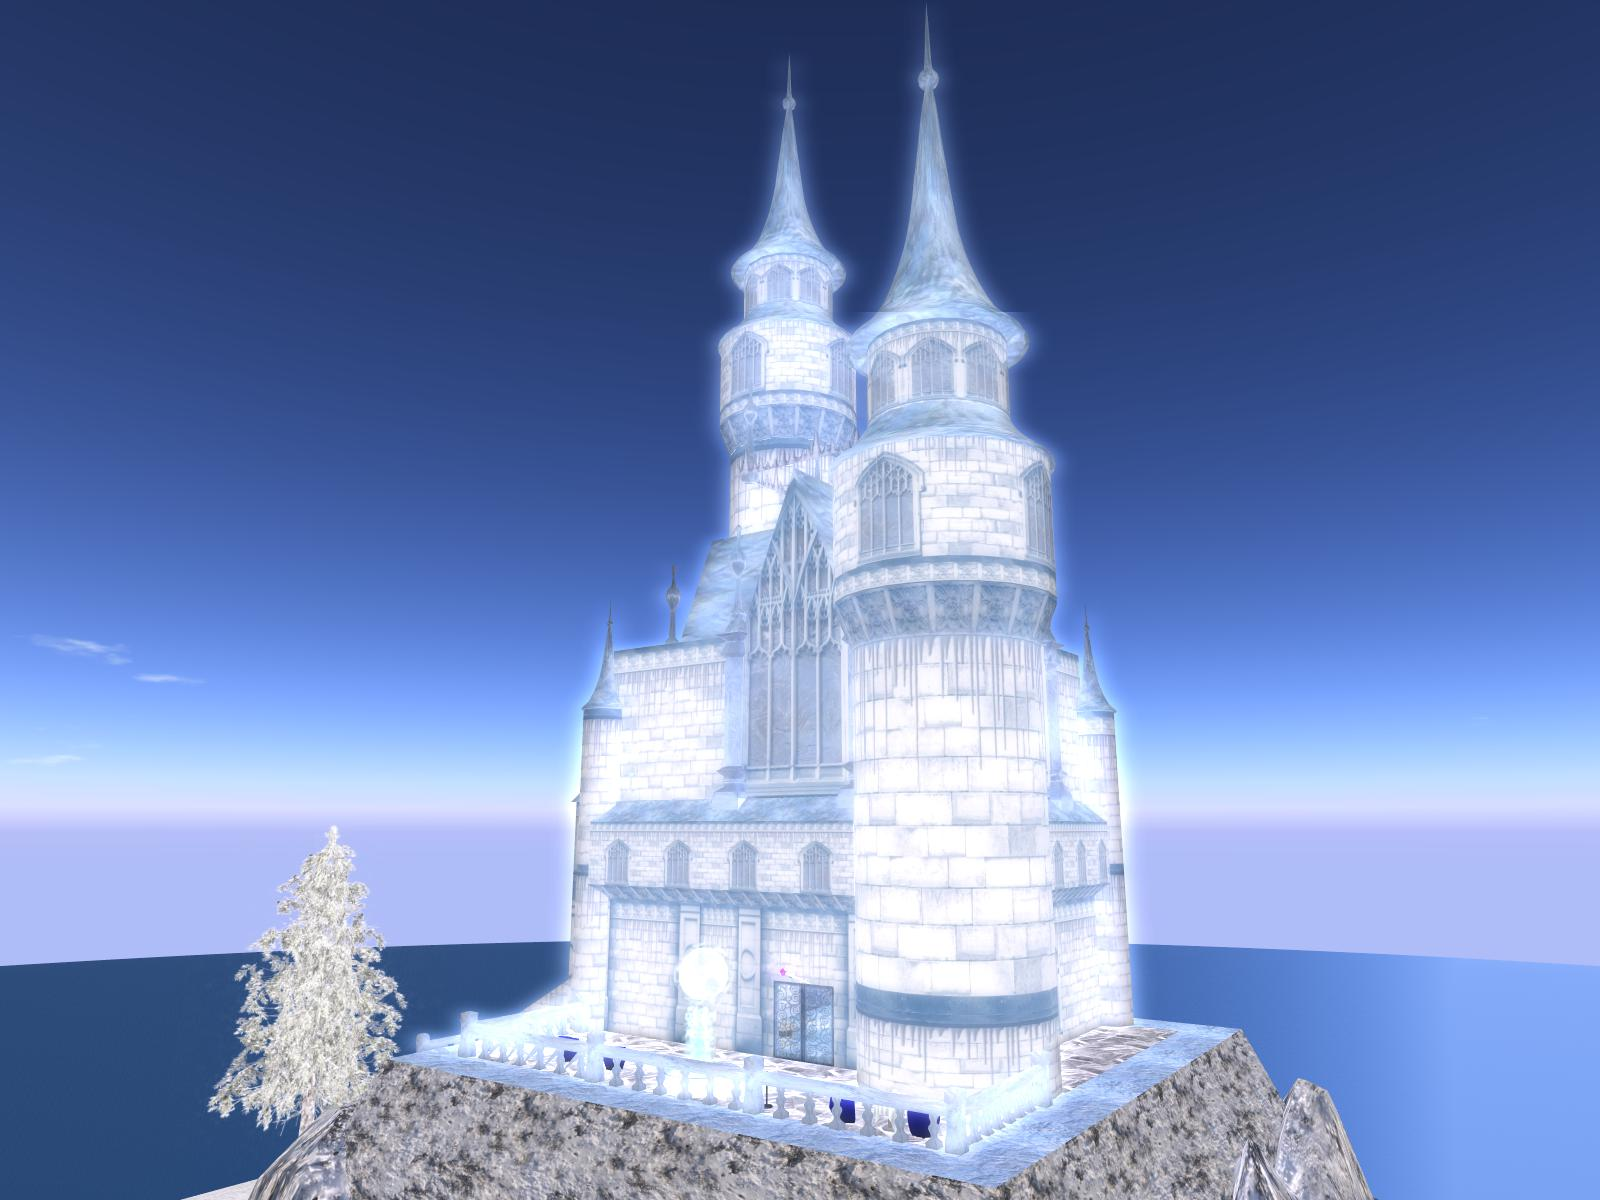 Frozen Ice Castle Wallpaper Presenting The Roses Club Pictures